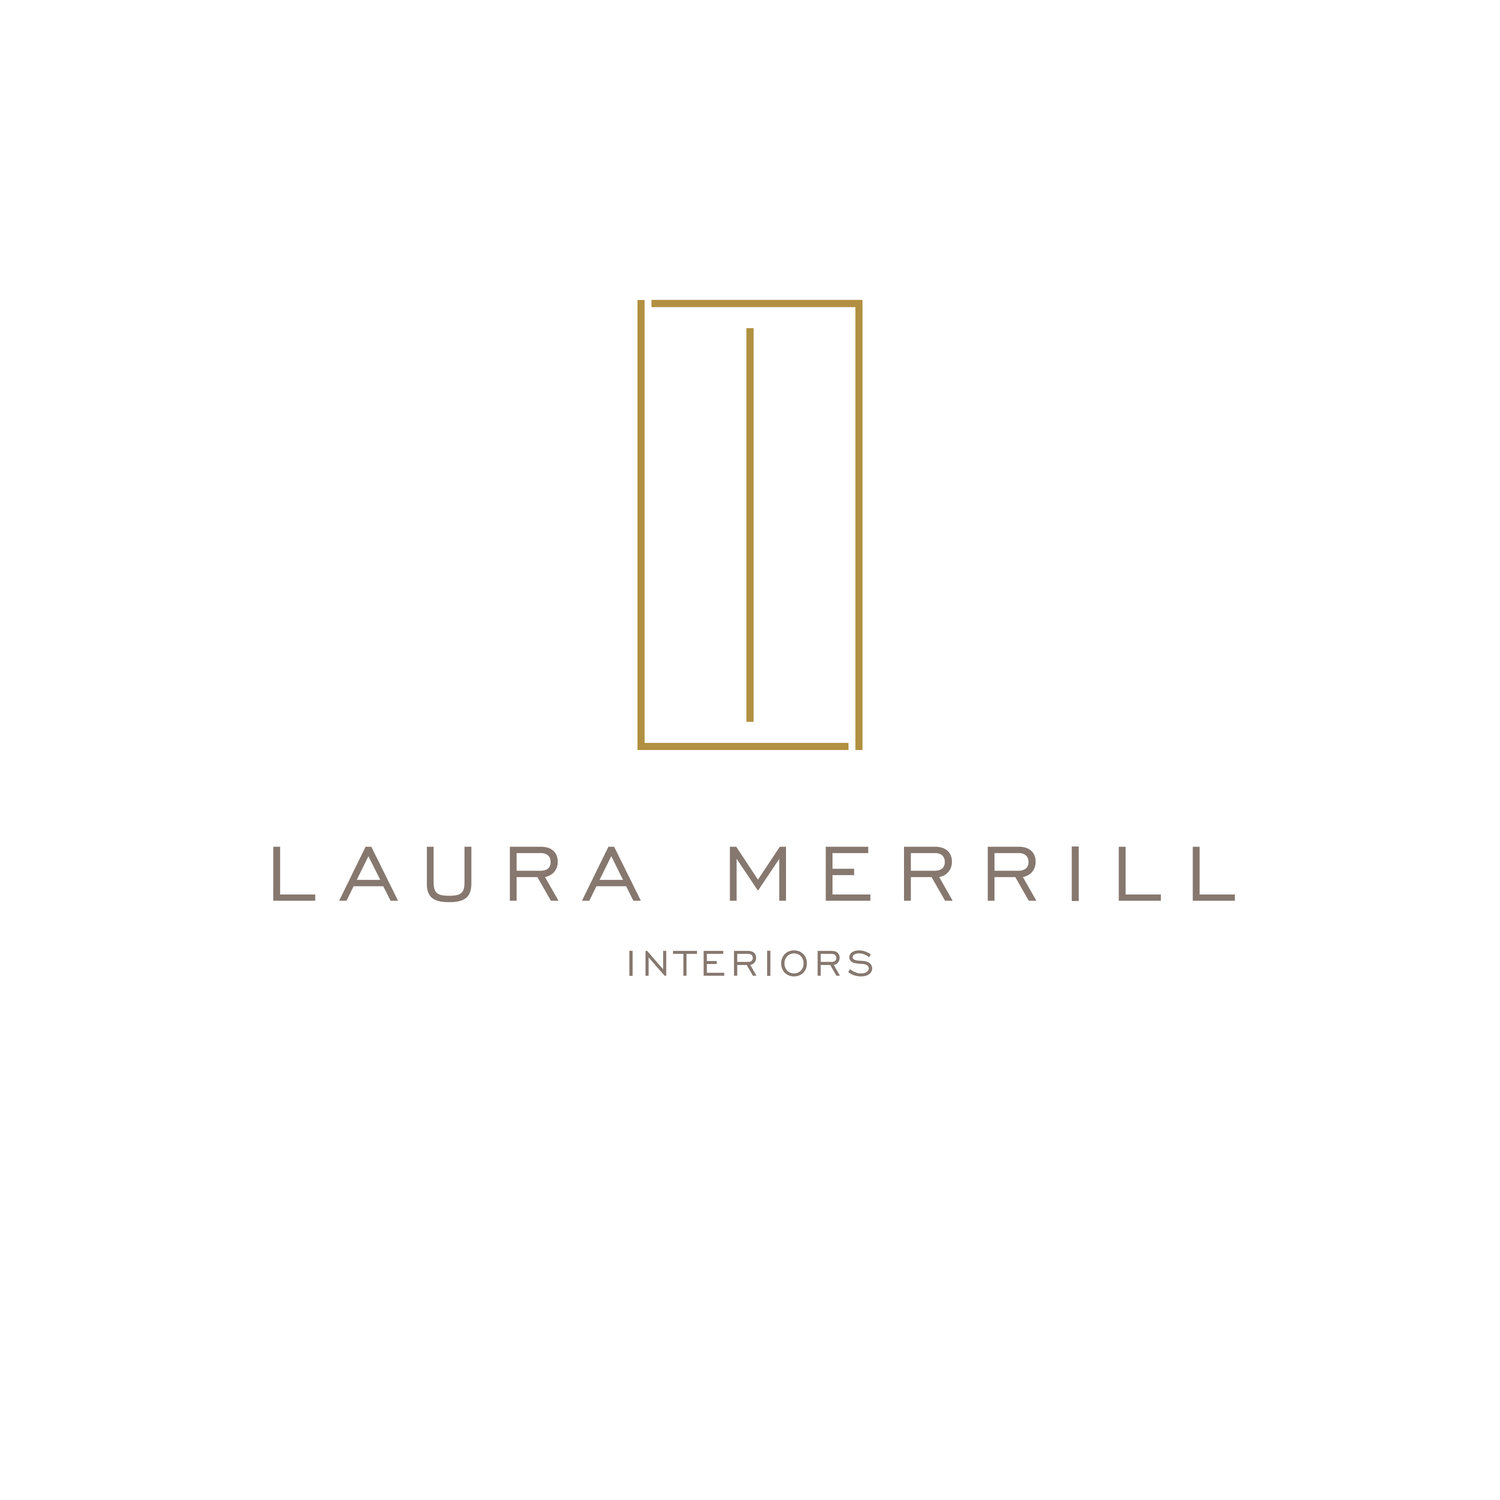 Laura Merrill Interiors